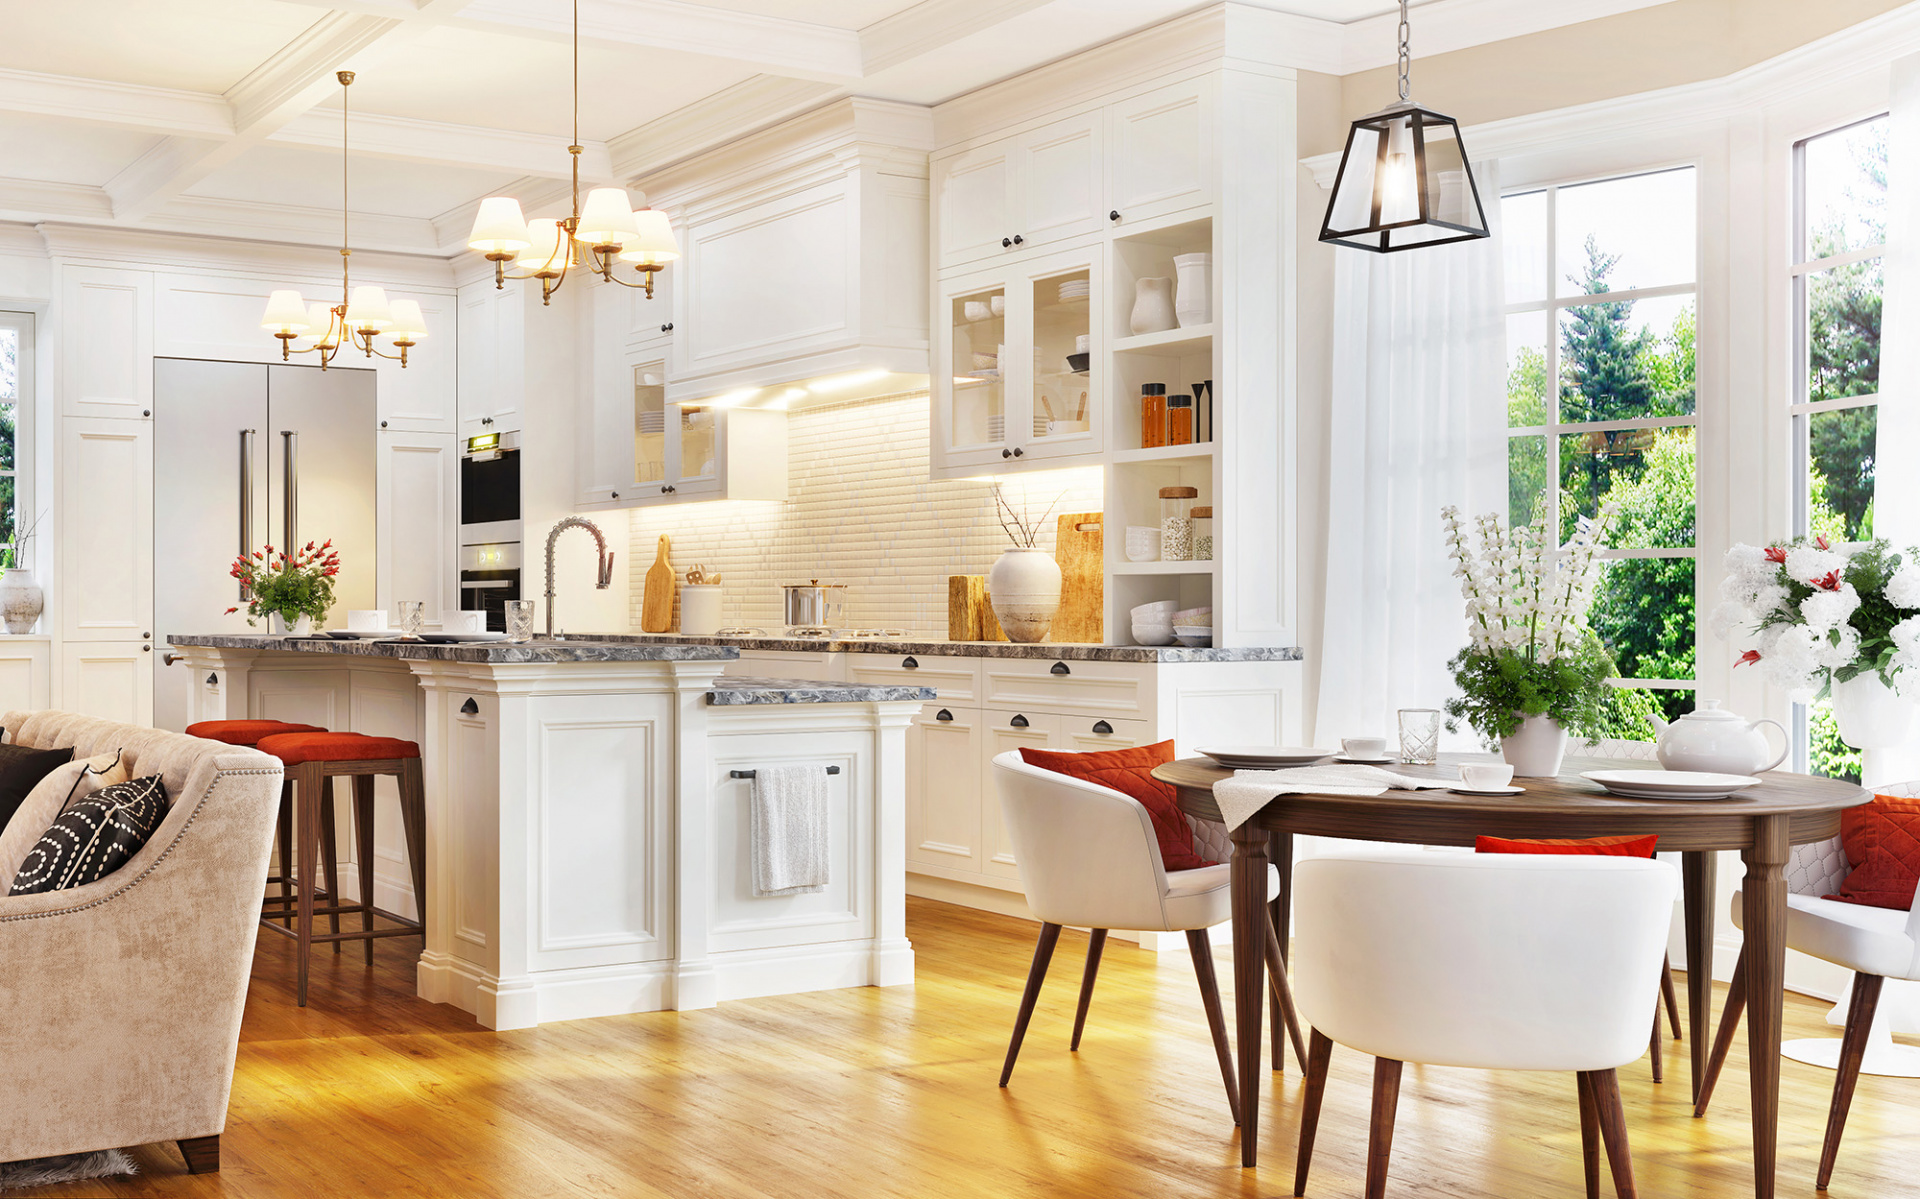 Create your dream country kitchen